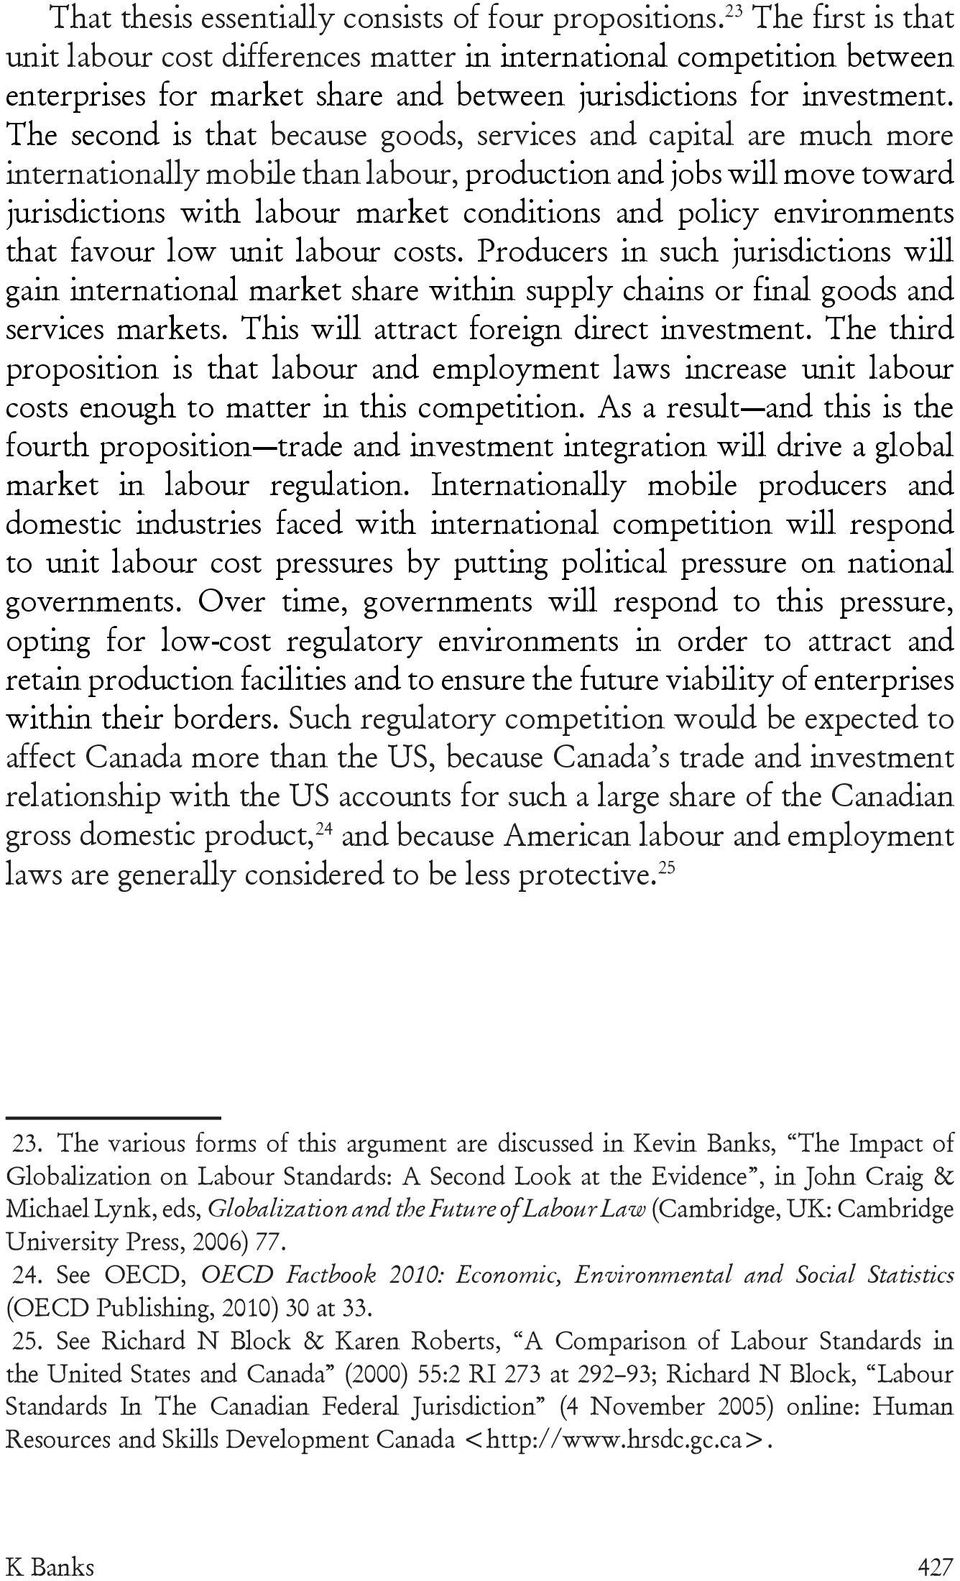 The second is that because goods, services and capital are much more internationally mobile than labour, production and jobs will move toward jurisdictions with labour market conditions and policy